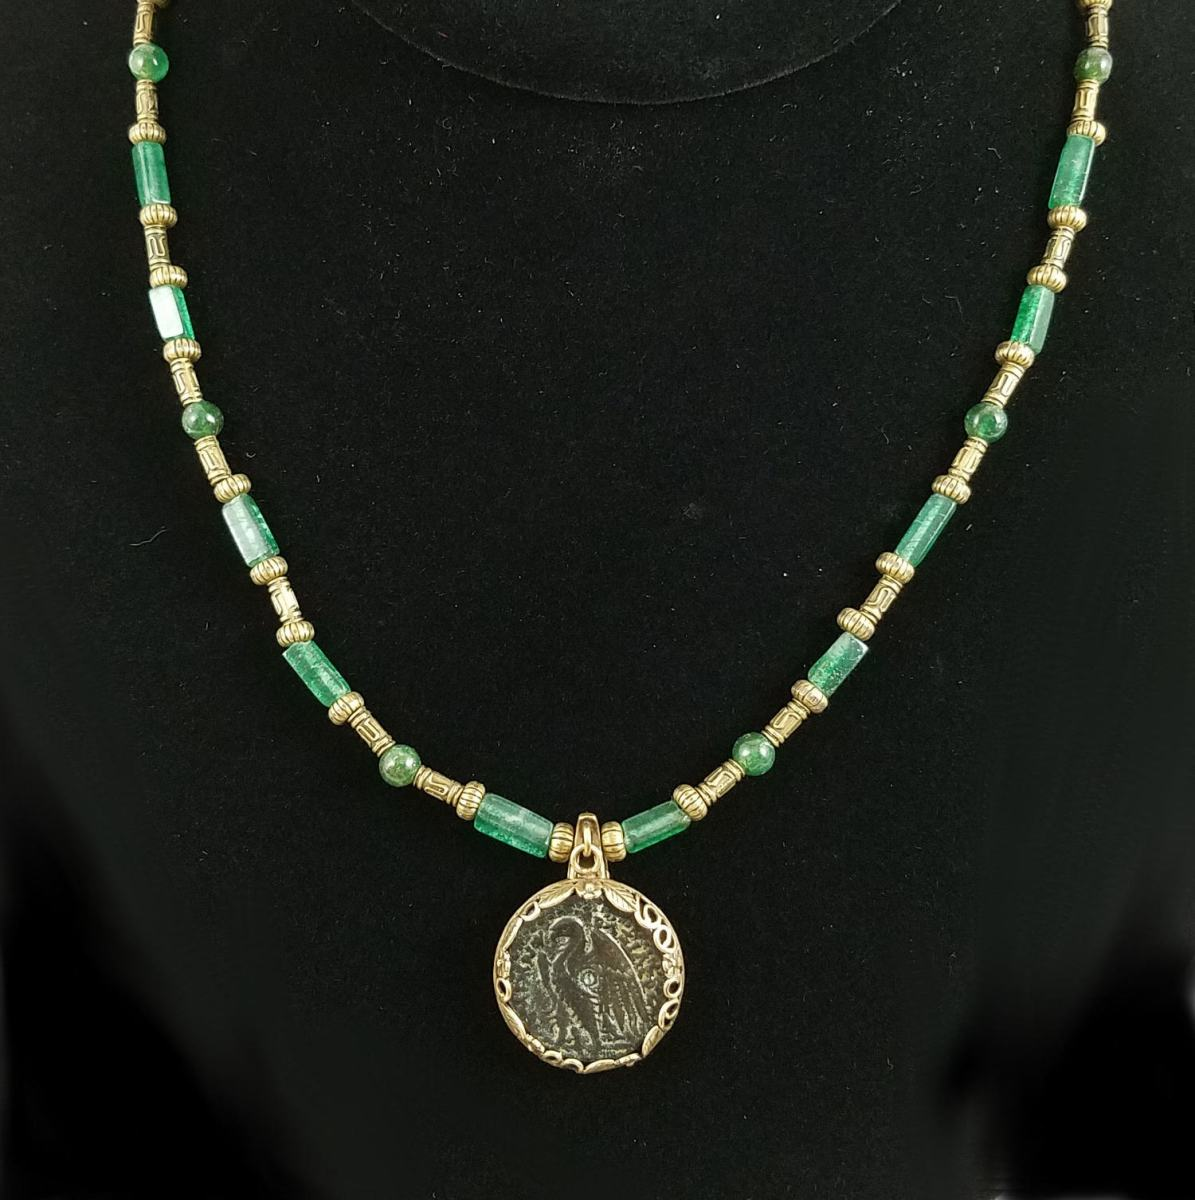 Coin of Ptlemy II on strand of antique brass and green aventurine beads